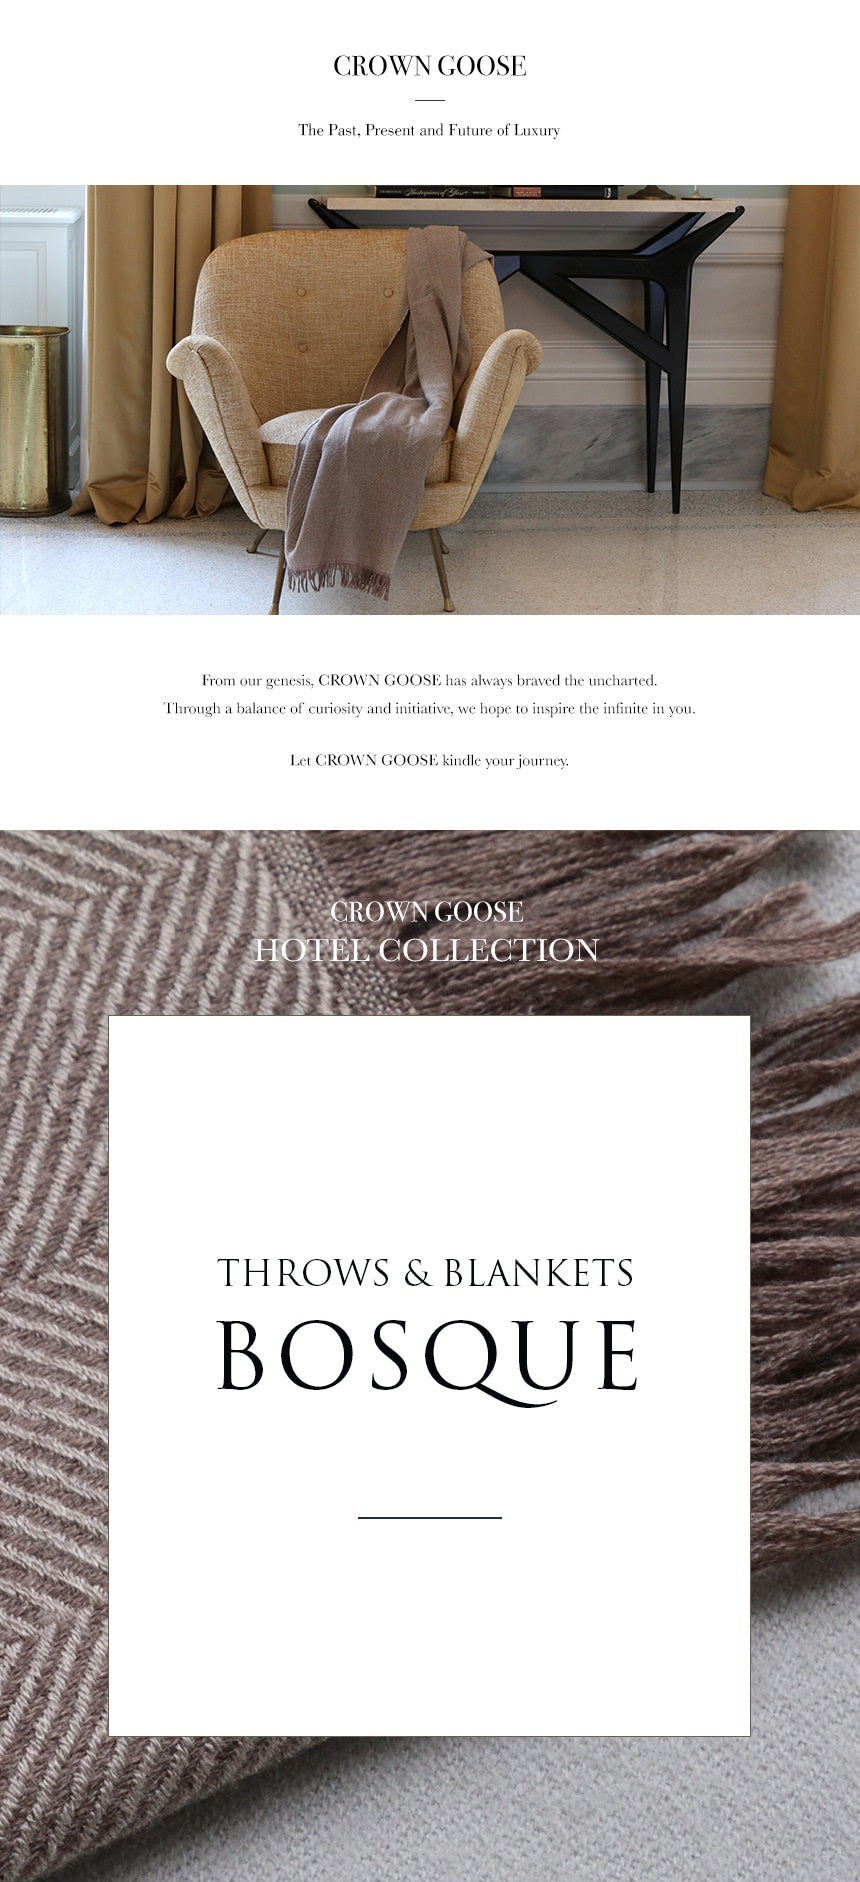 Throw & Blanket Dalton - Bosque